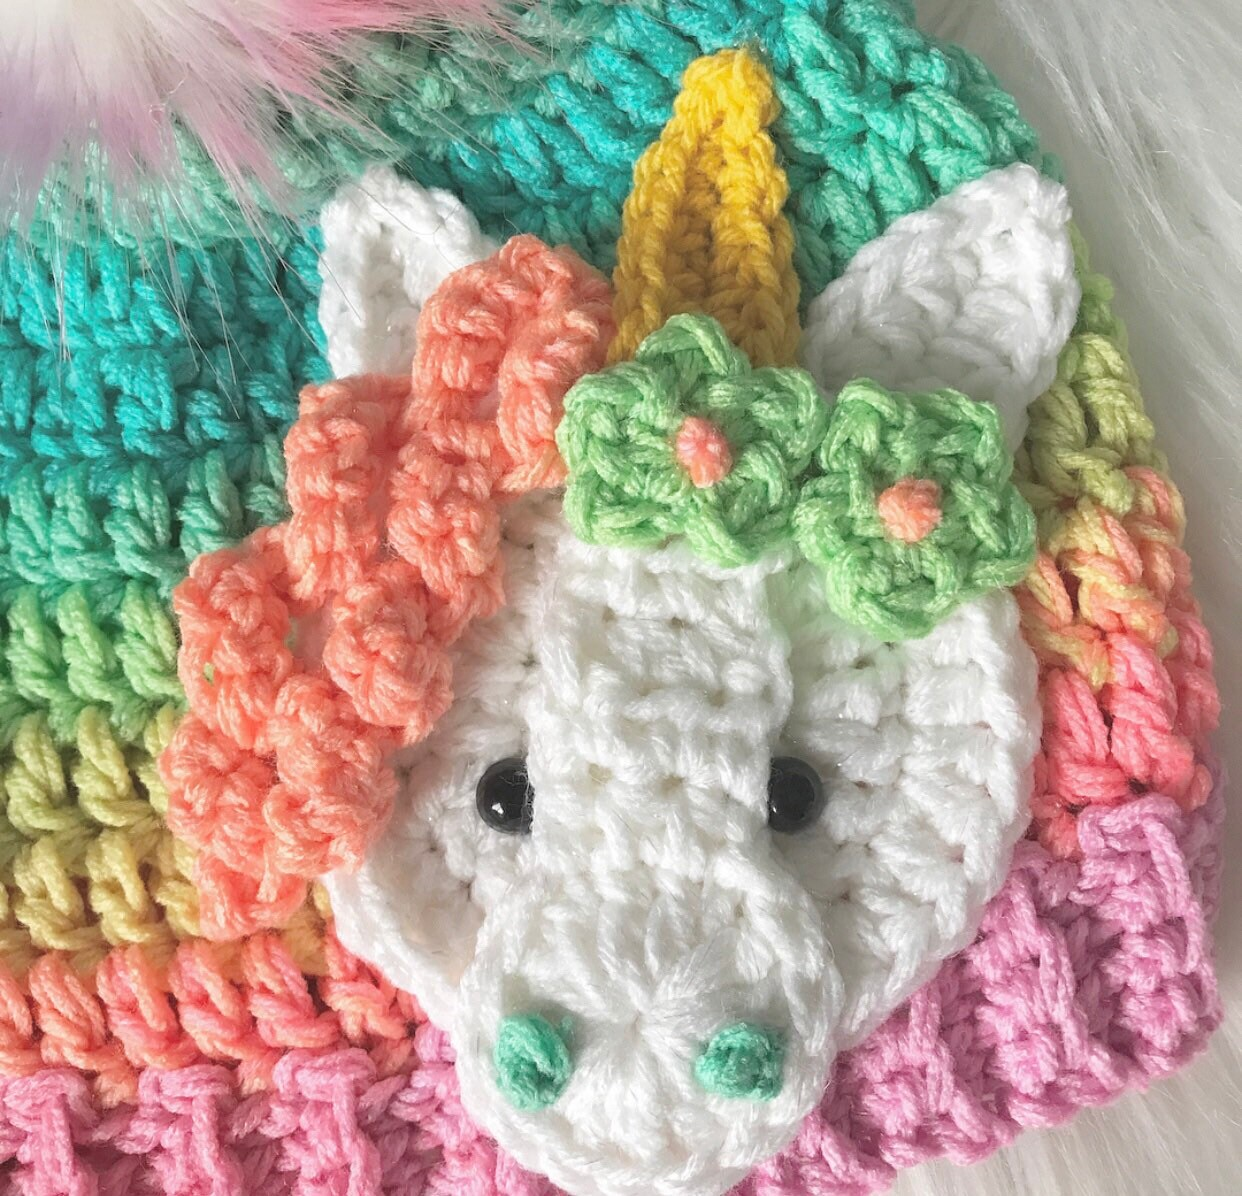 0189e7307c3f0 ... Beanie - Hat - Ombre - Gifts for Her - Unicorn Hat - Unicorn Hats -  Crochet. gallery photo gallery photo gallery photo gallery photo gallery  photo ...